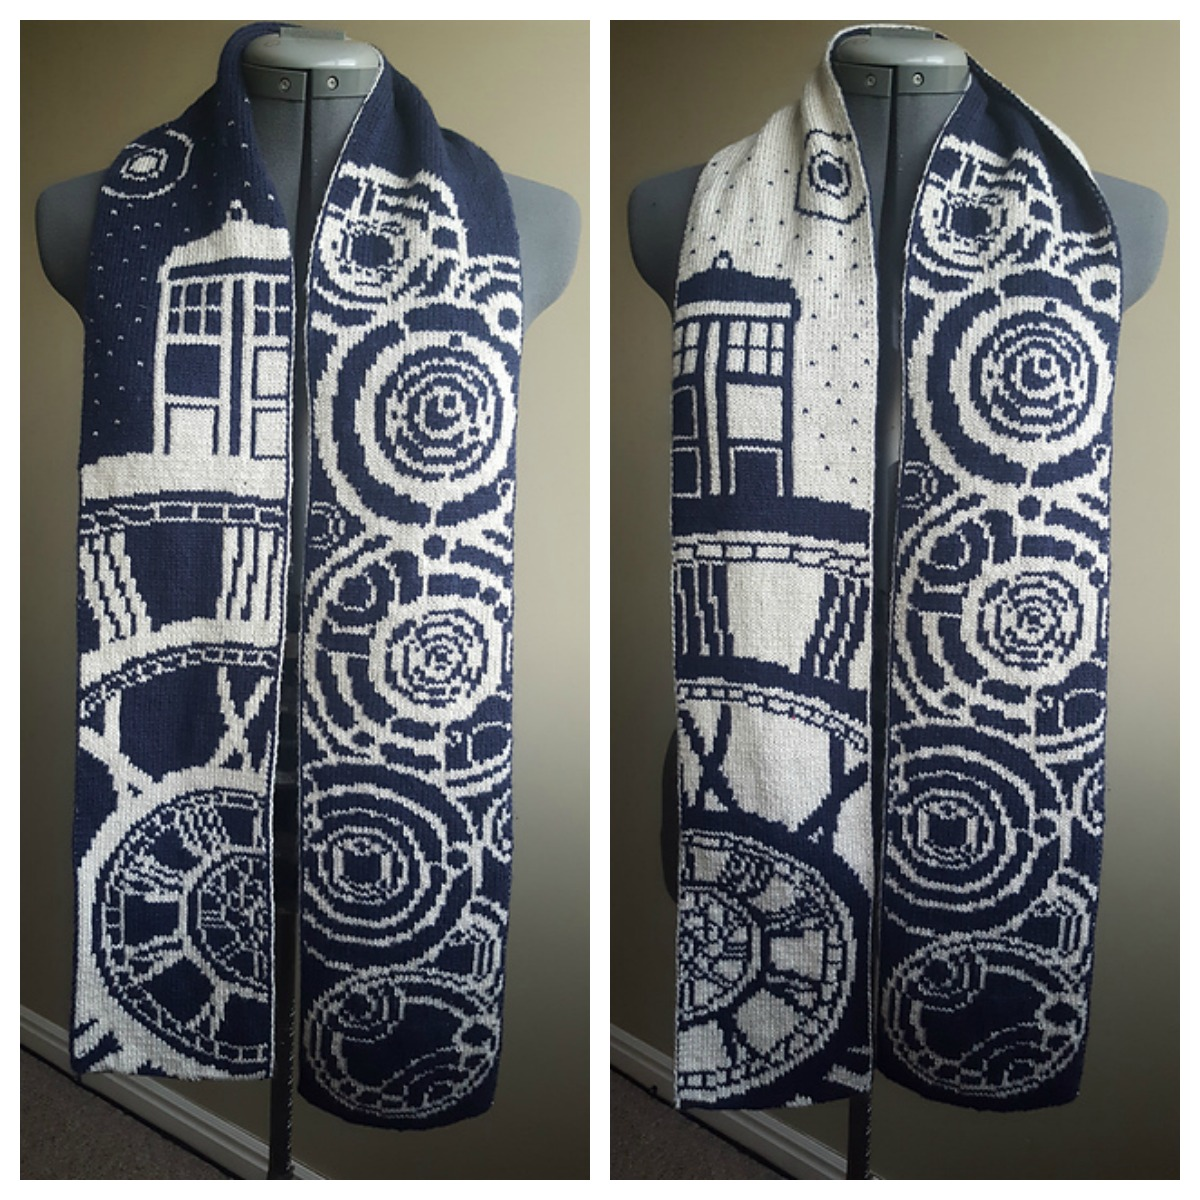 Double-Knit 'Time of the Doctor' Doctor Who Scarf Designed By Tess Campbell